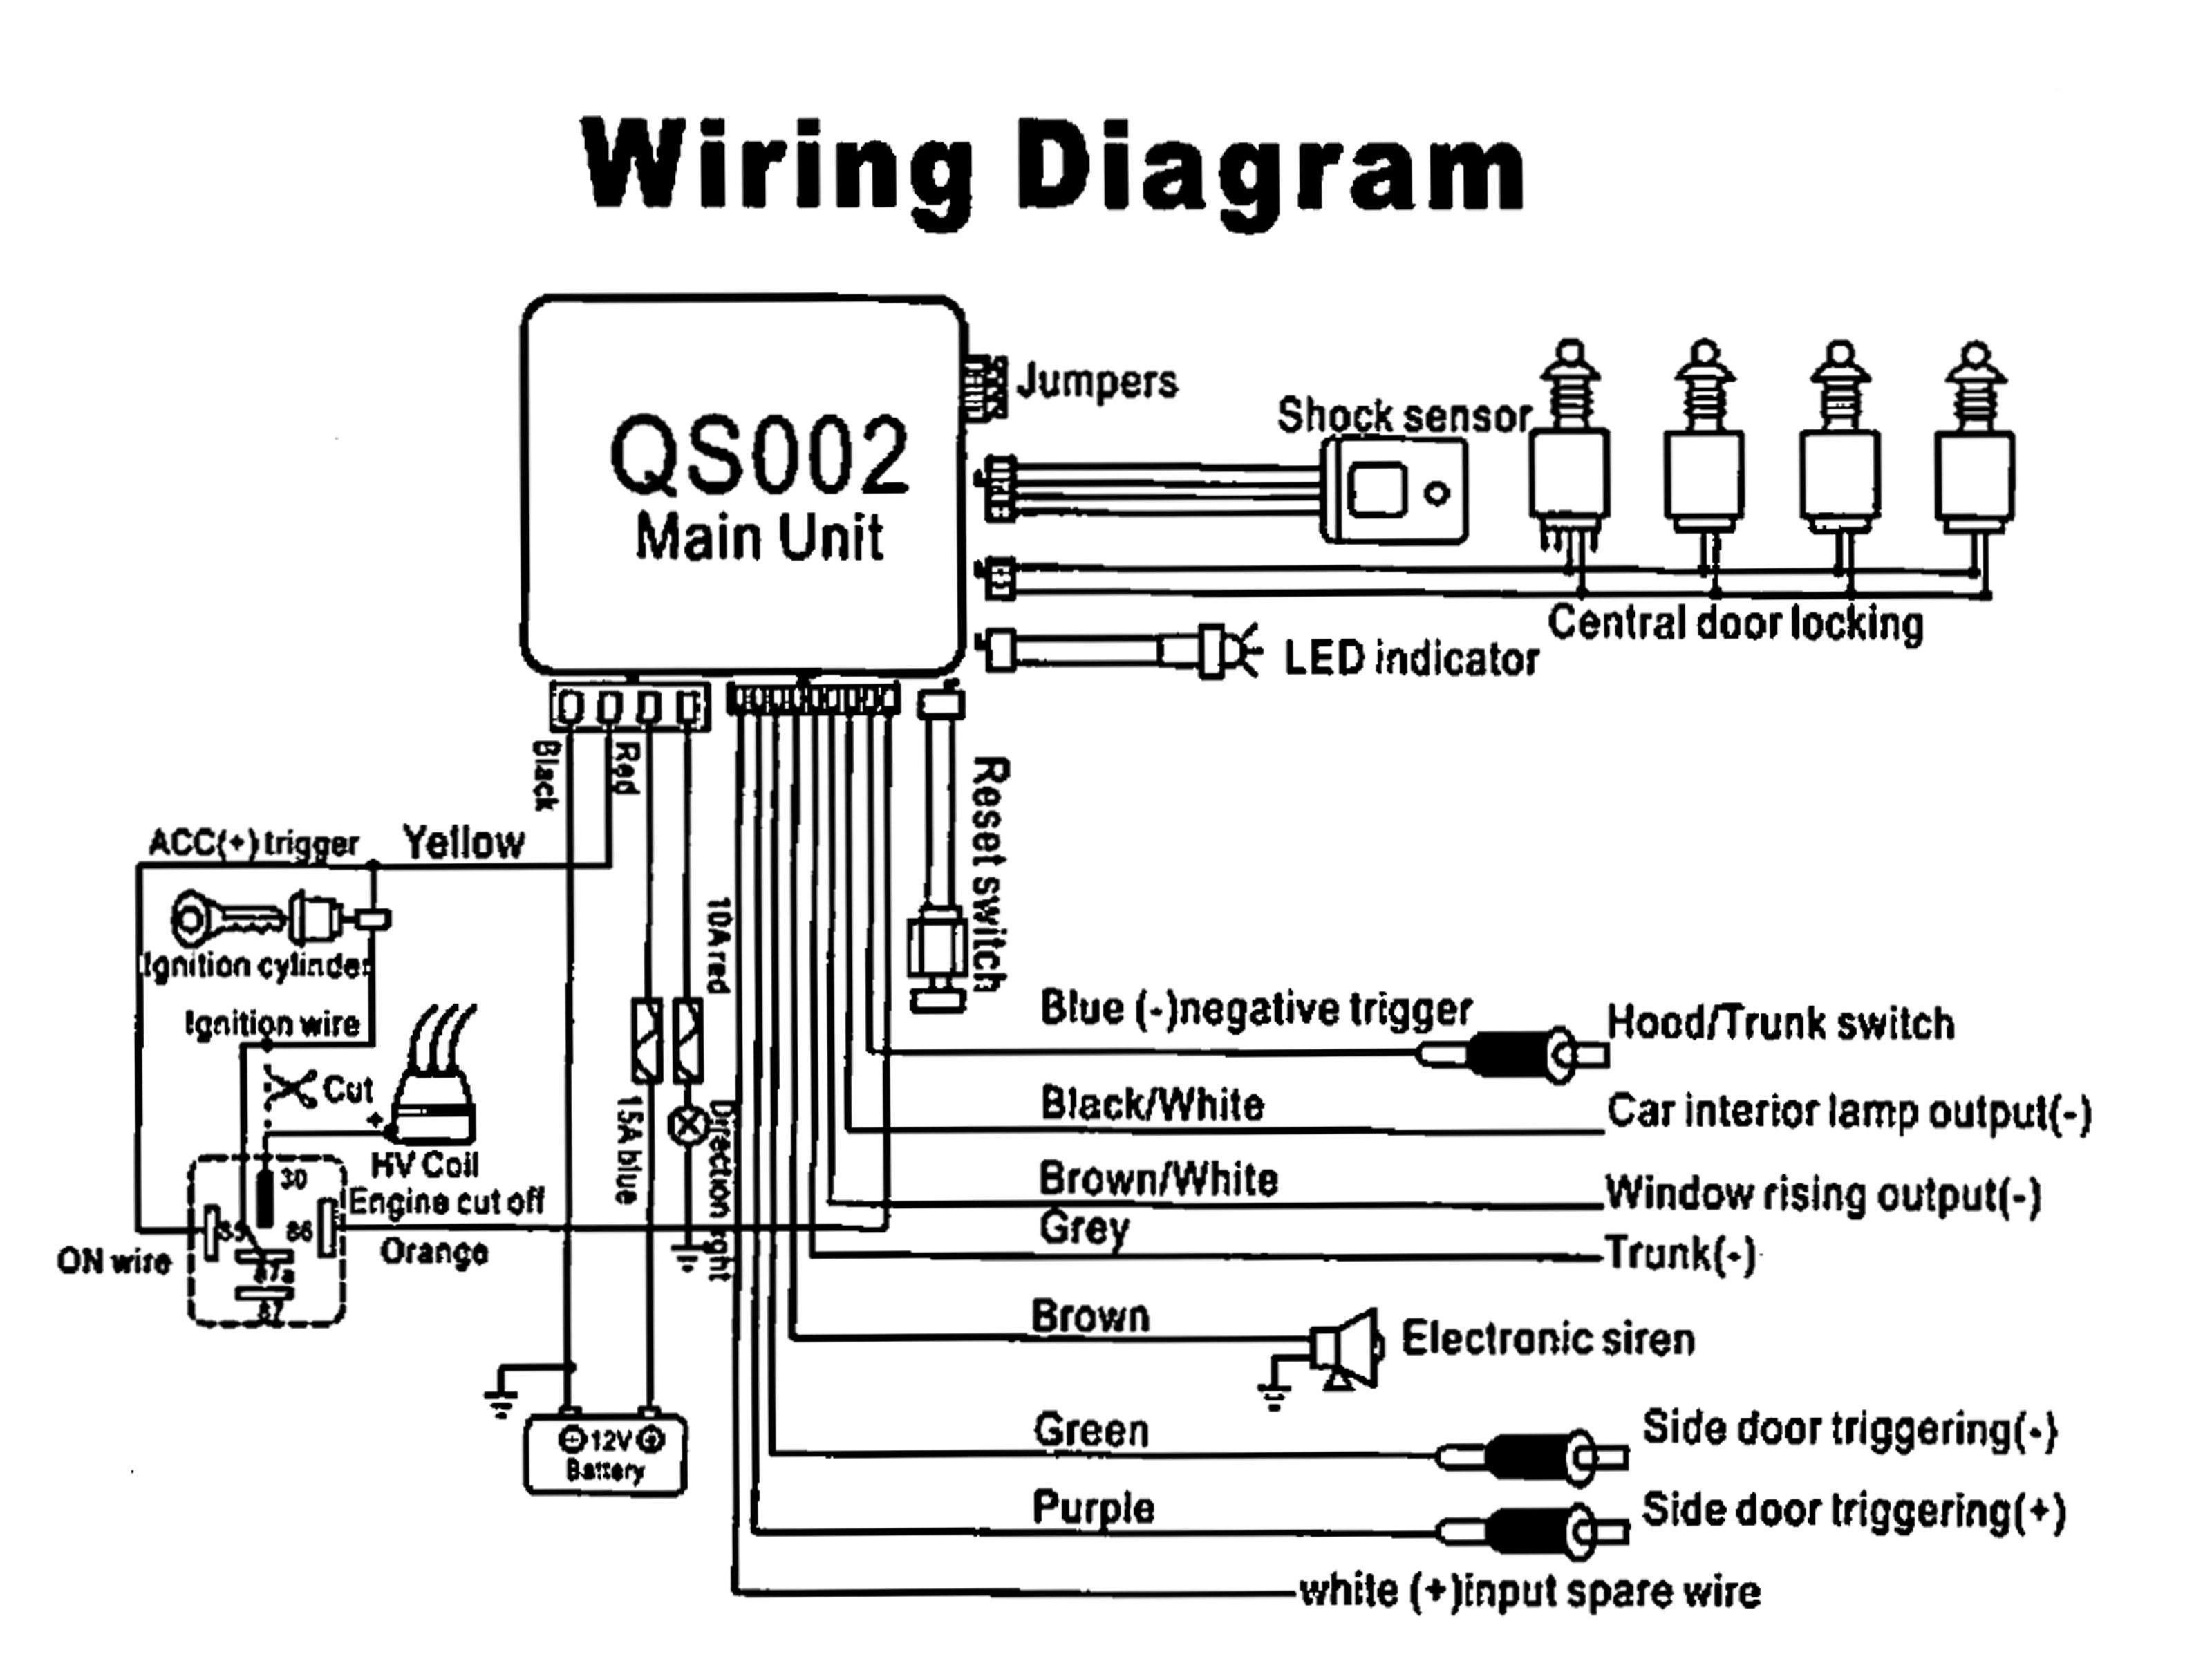 New Automobile Wire Diagrams Diagram Wiringdiagram Diagramming Diagramm Visuals Visualisation Graphical Che Car Alarm Diagram Electrical Circuit Diagram